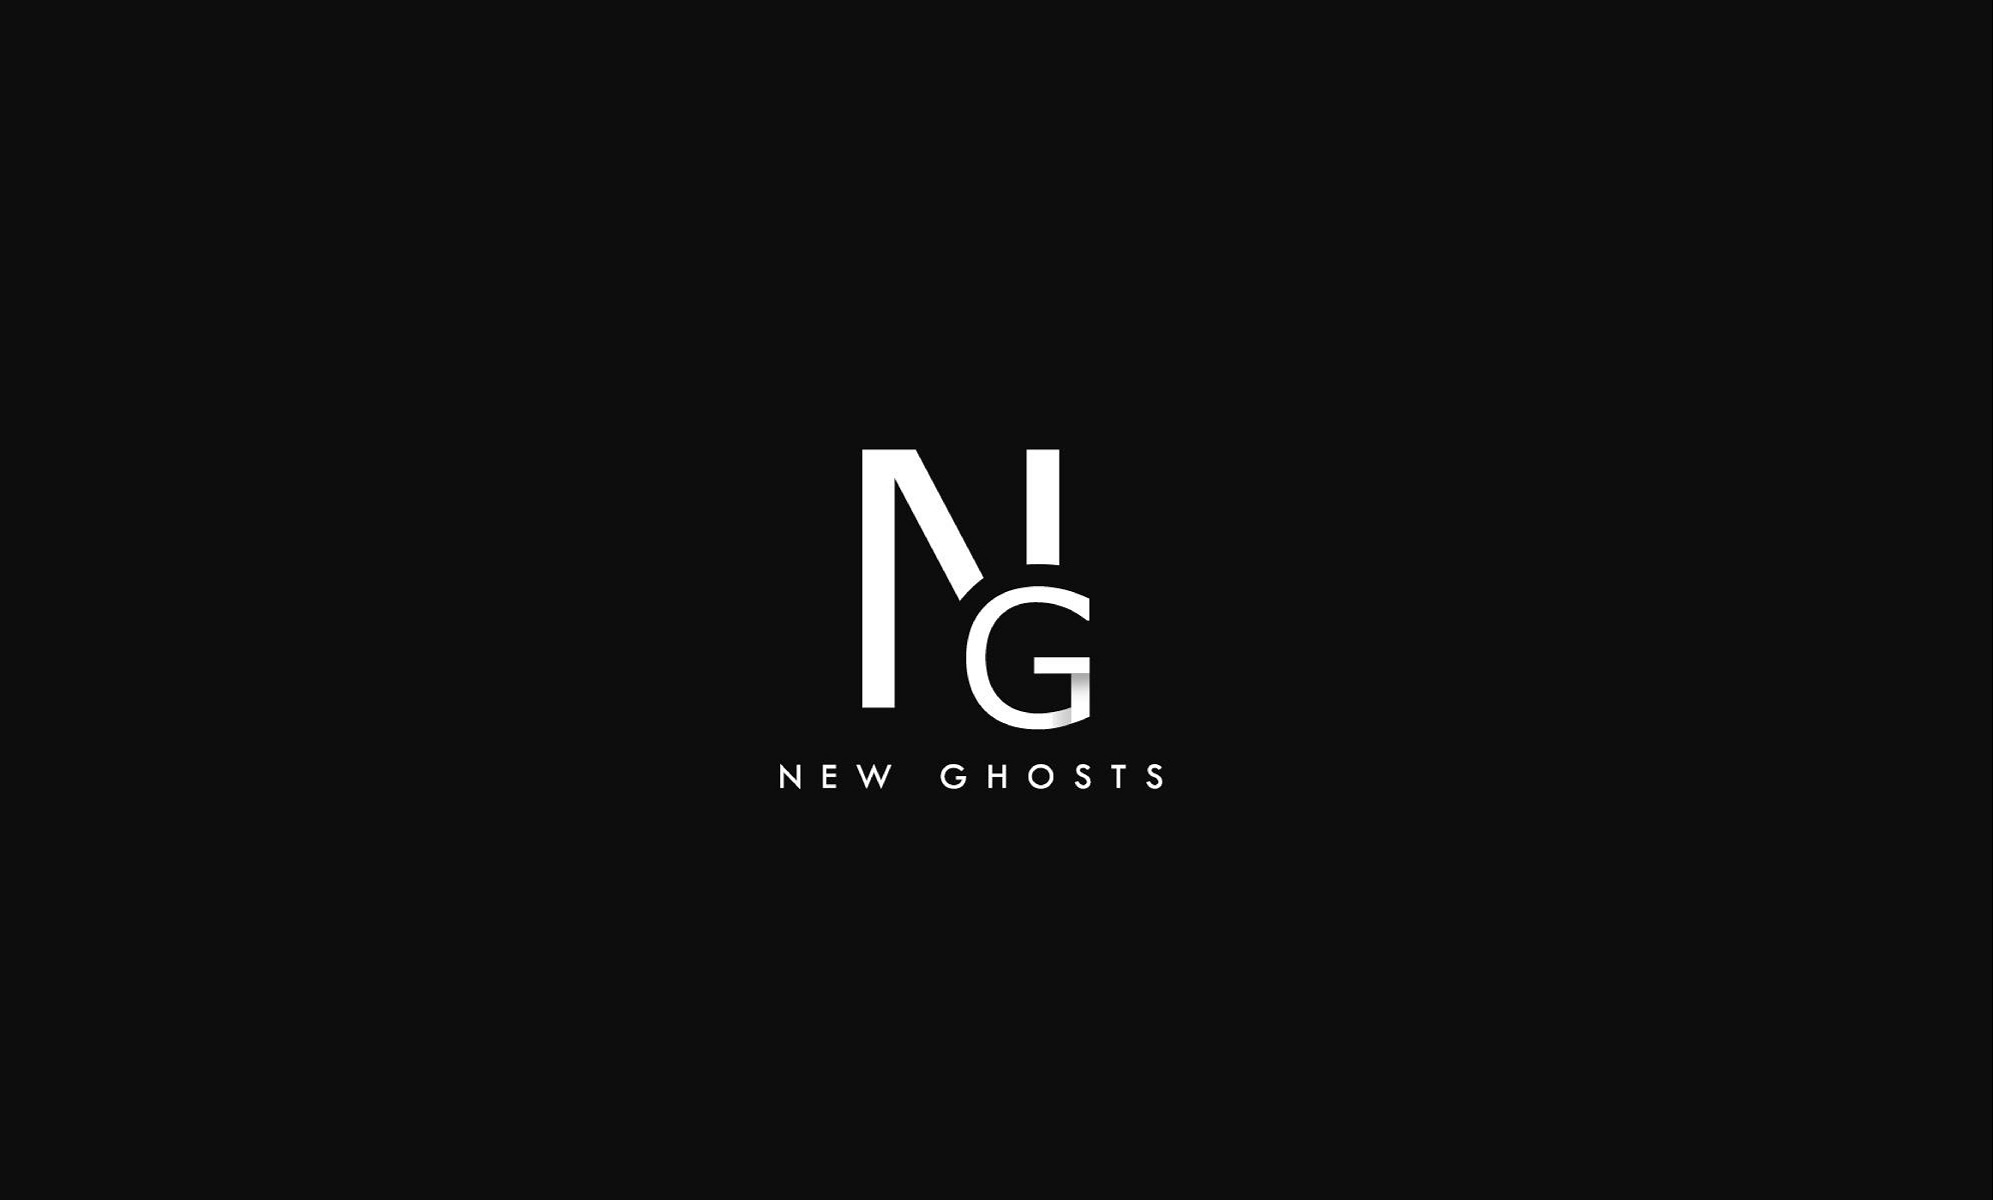 NEW GHOSTS THEATRE COMPANY